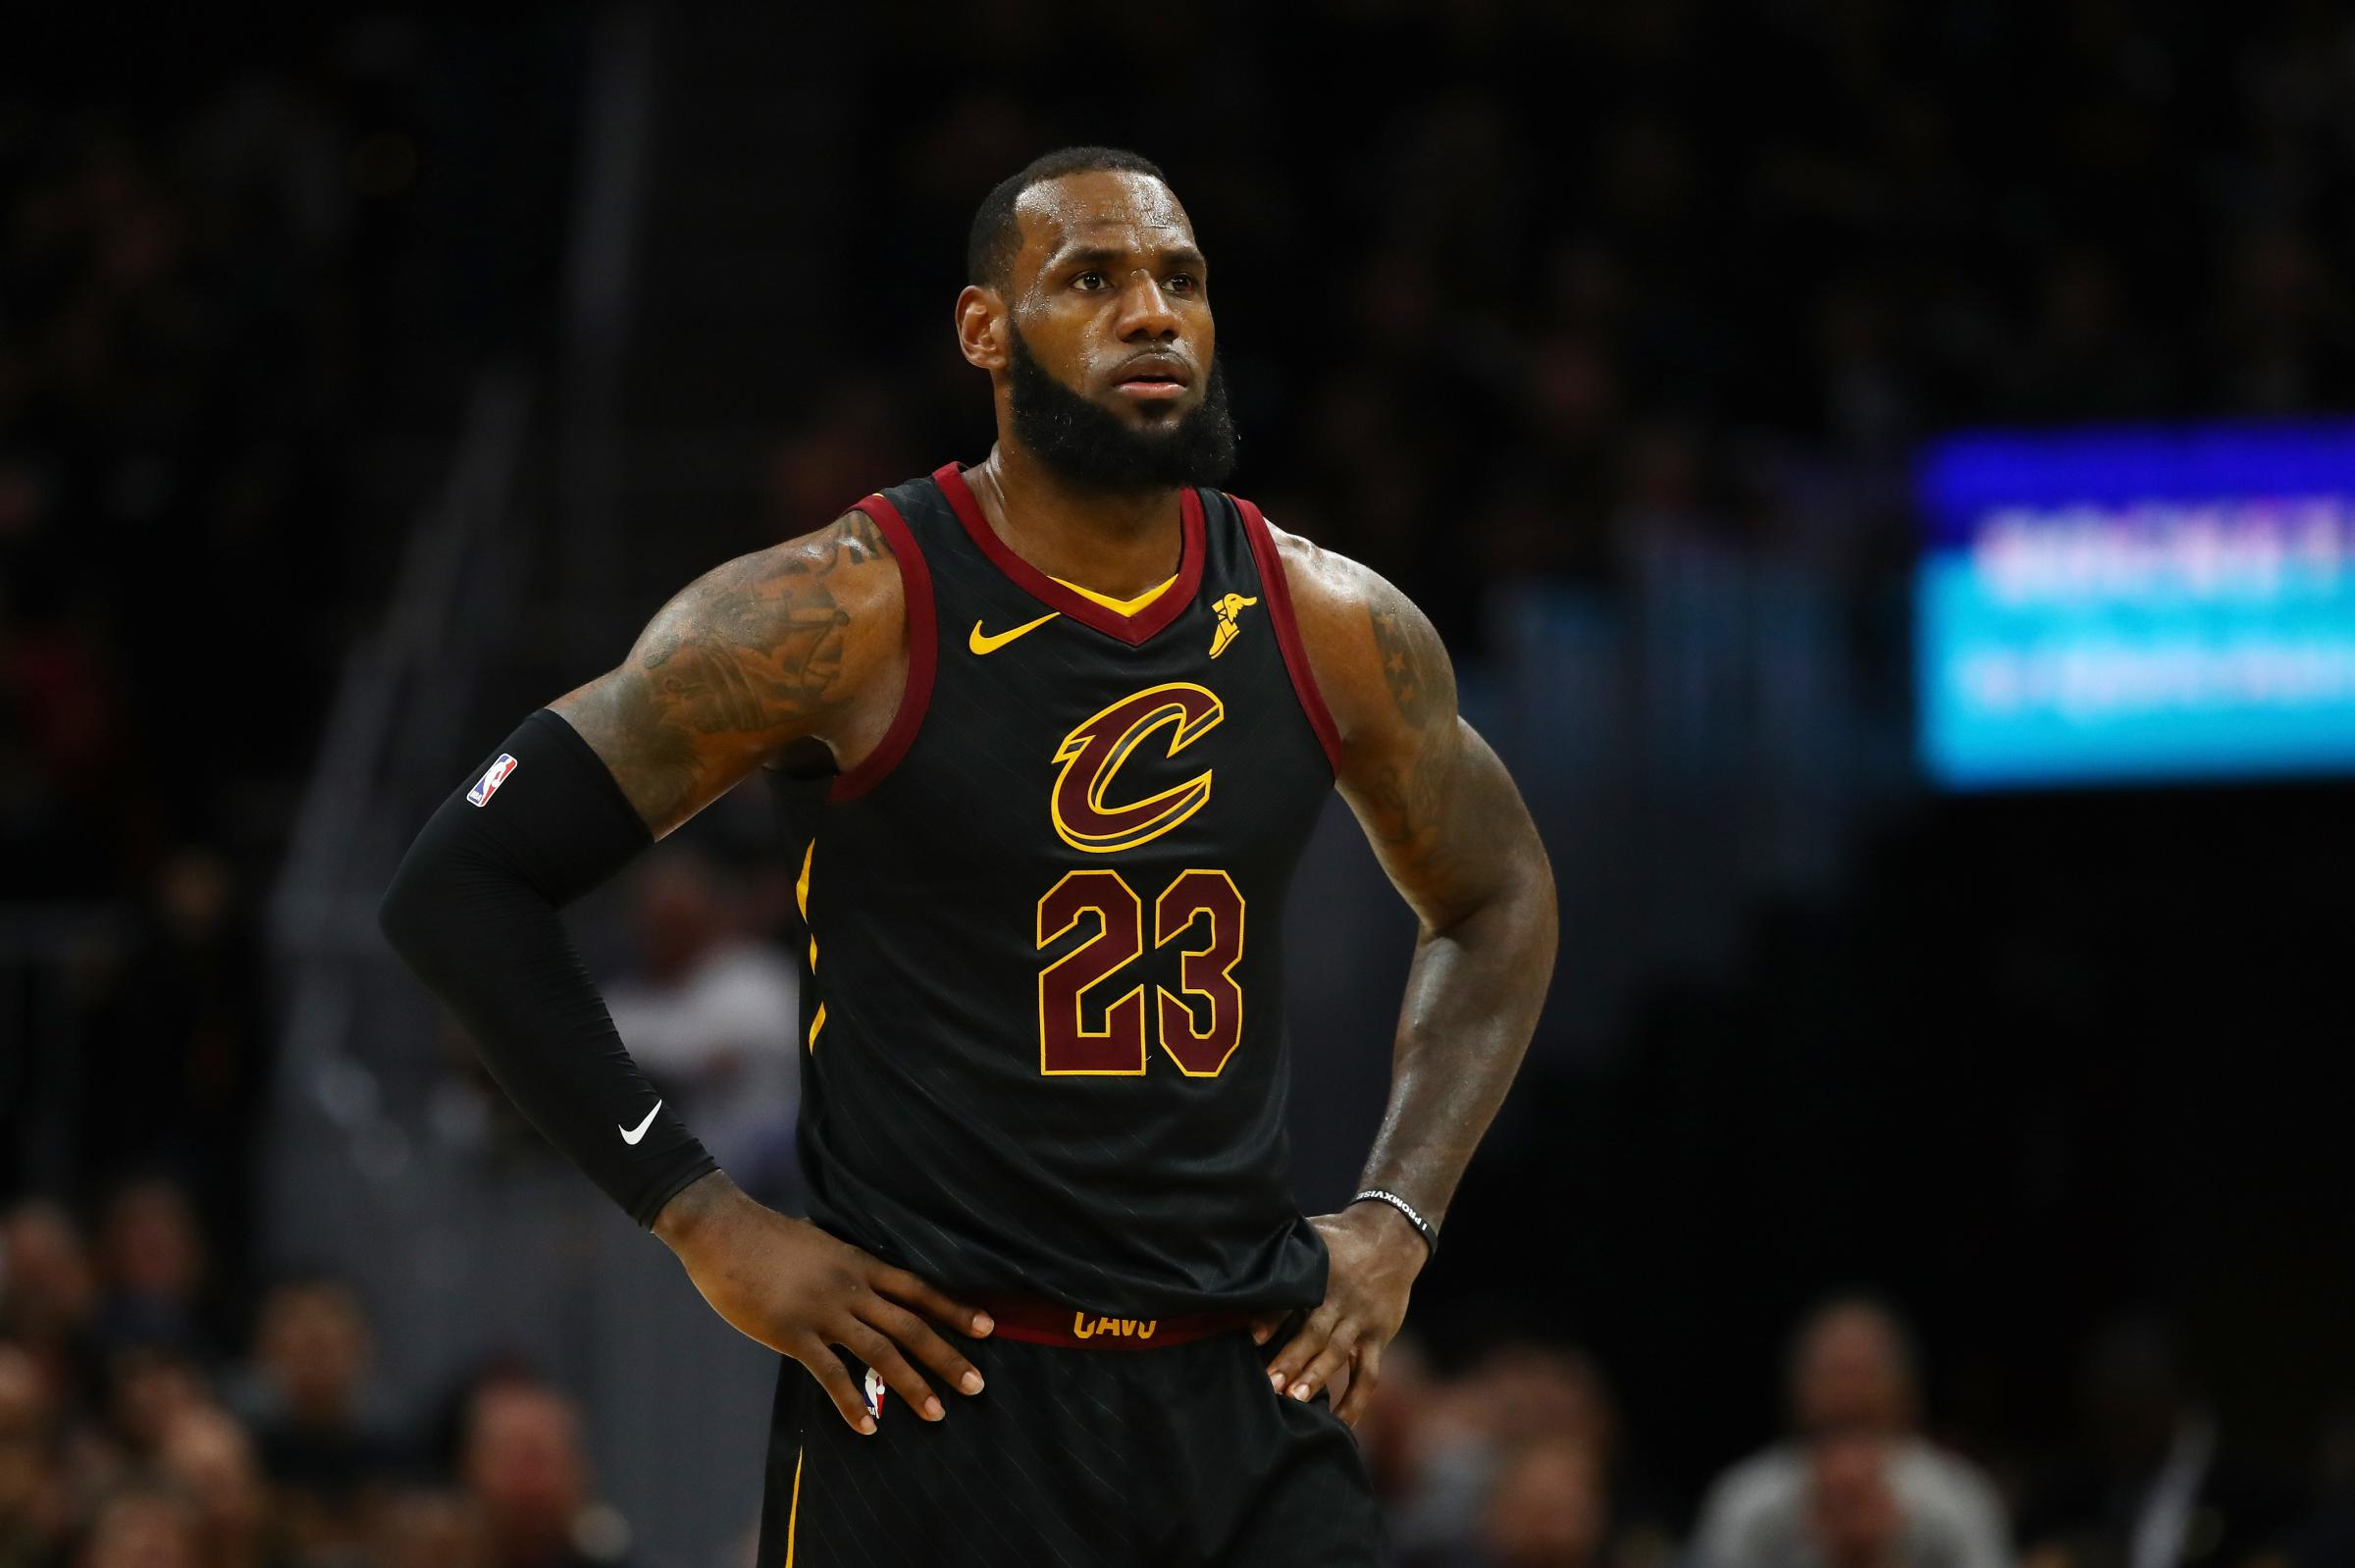 065062f1f2d4 LeBron James To Leave Cleveland For The Los Angeles Lakers